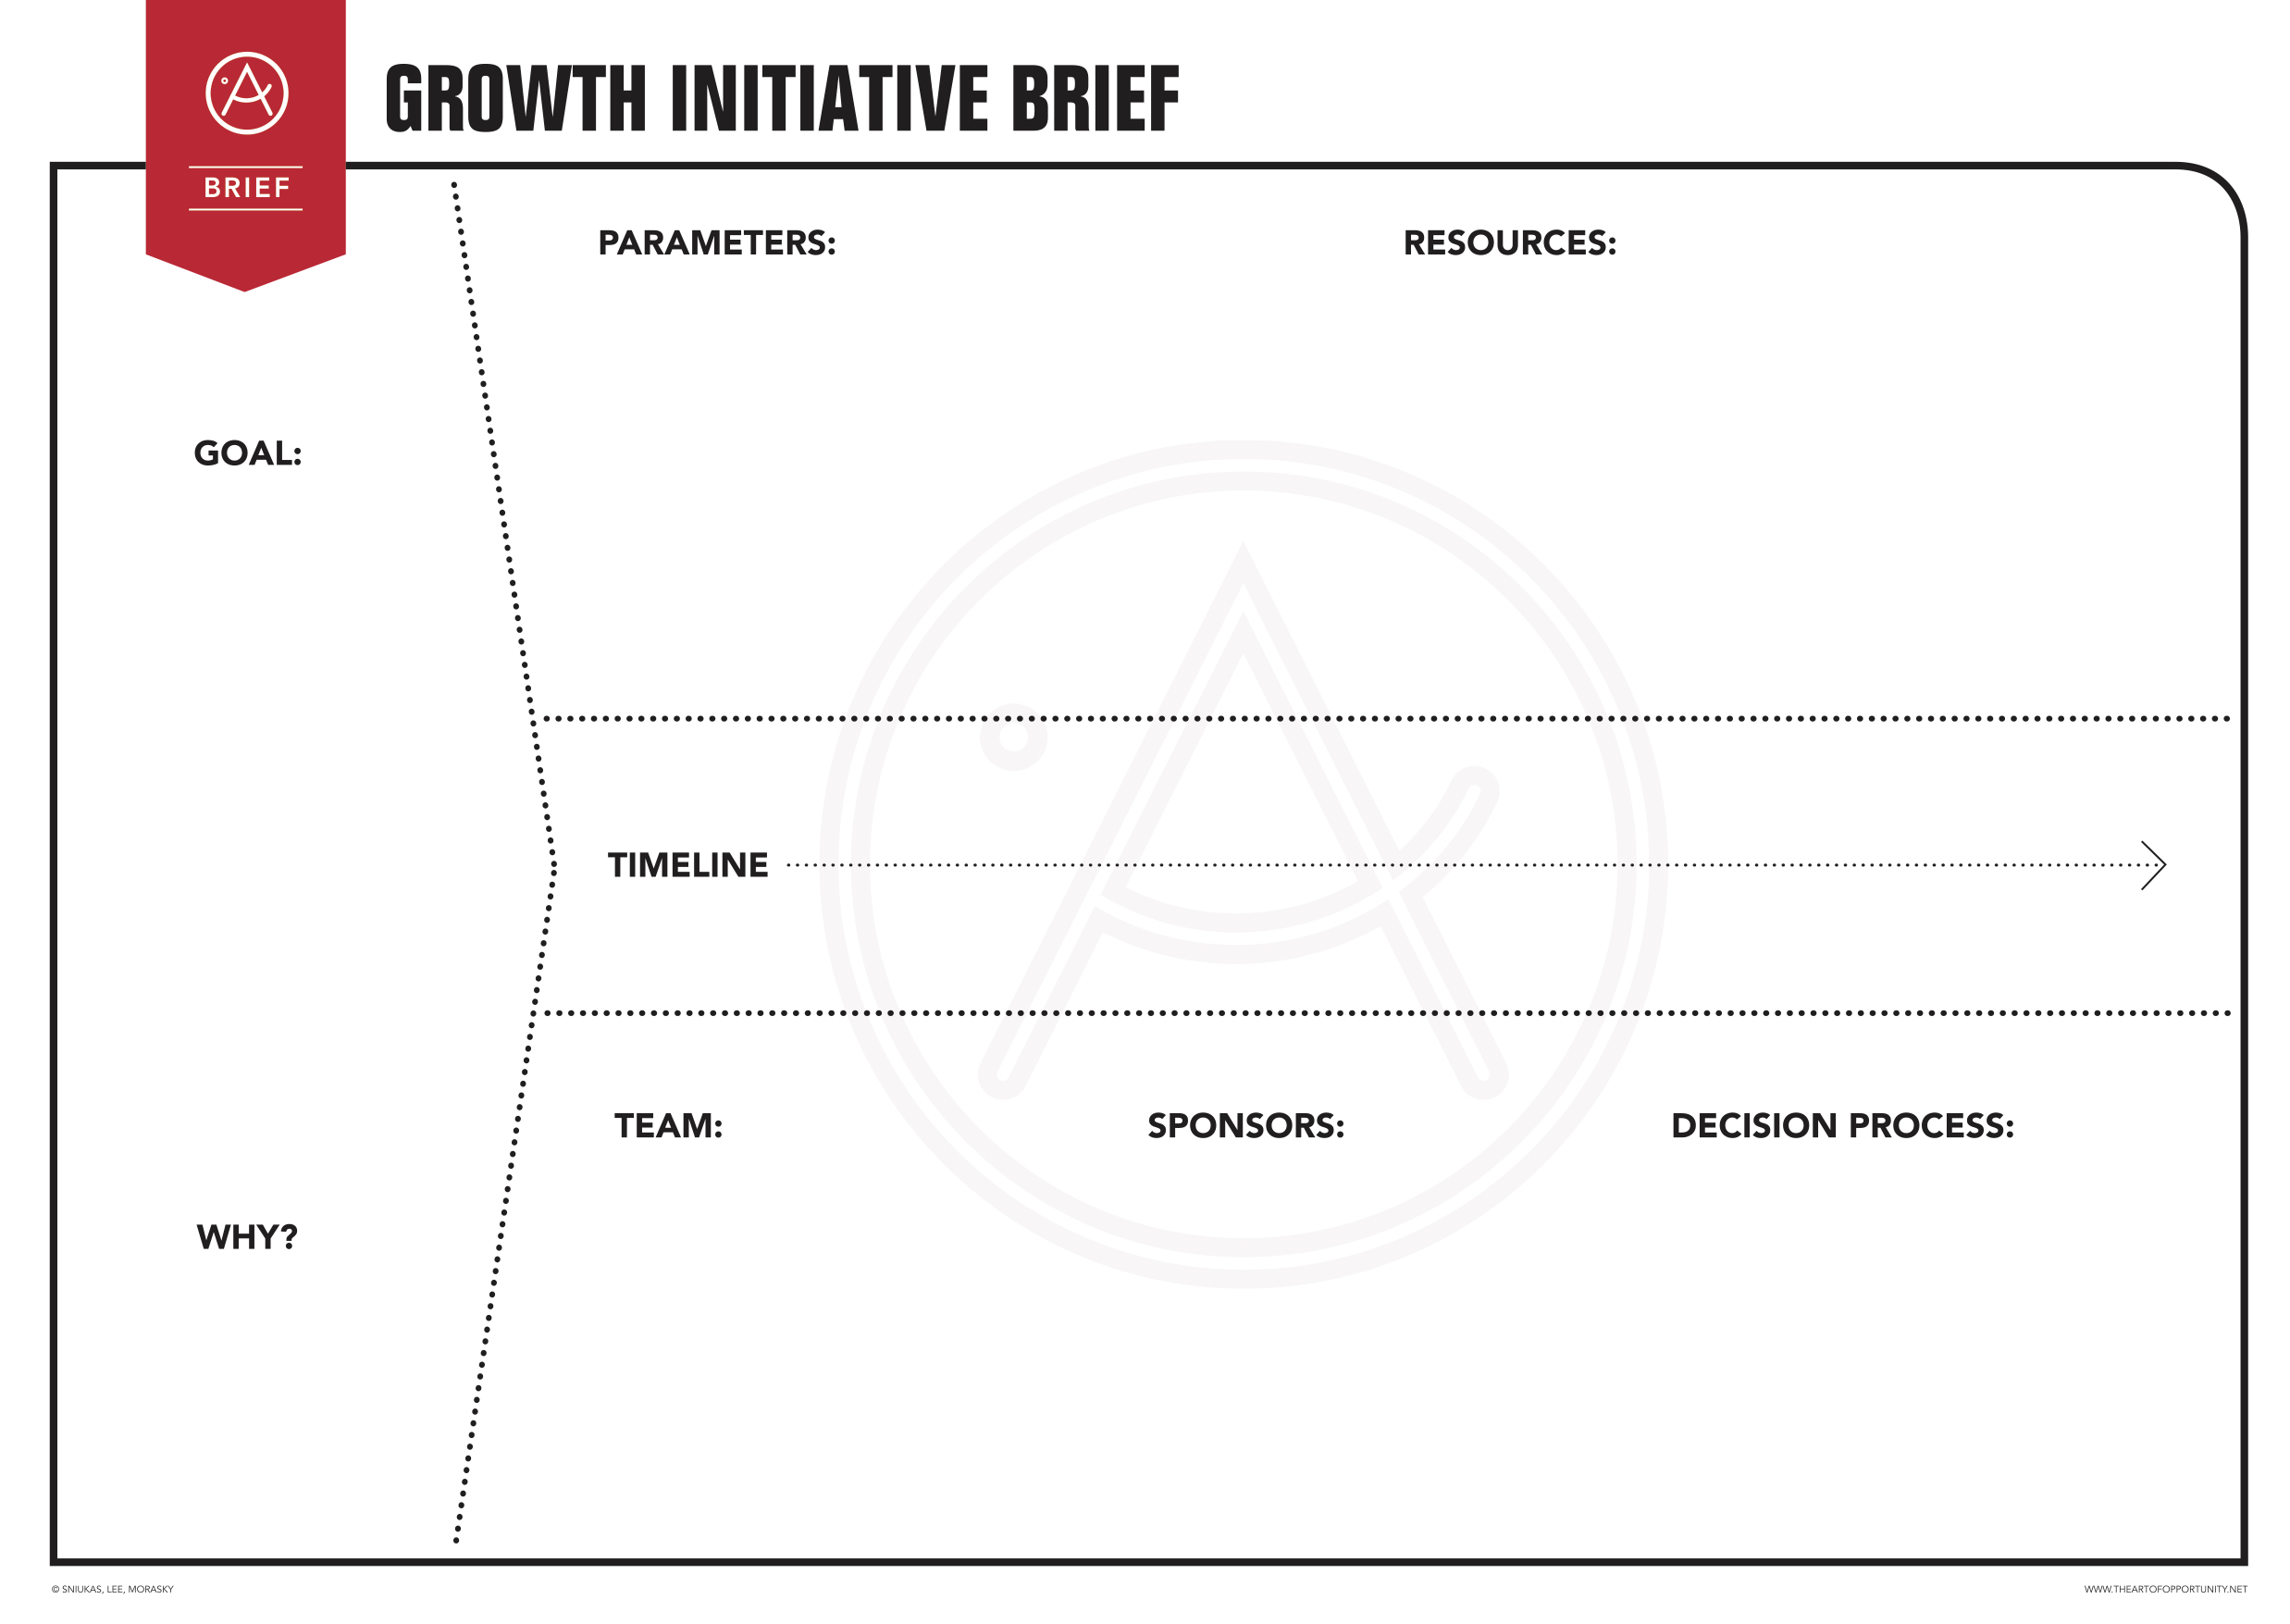 Template:The Growth Initiative Brief